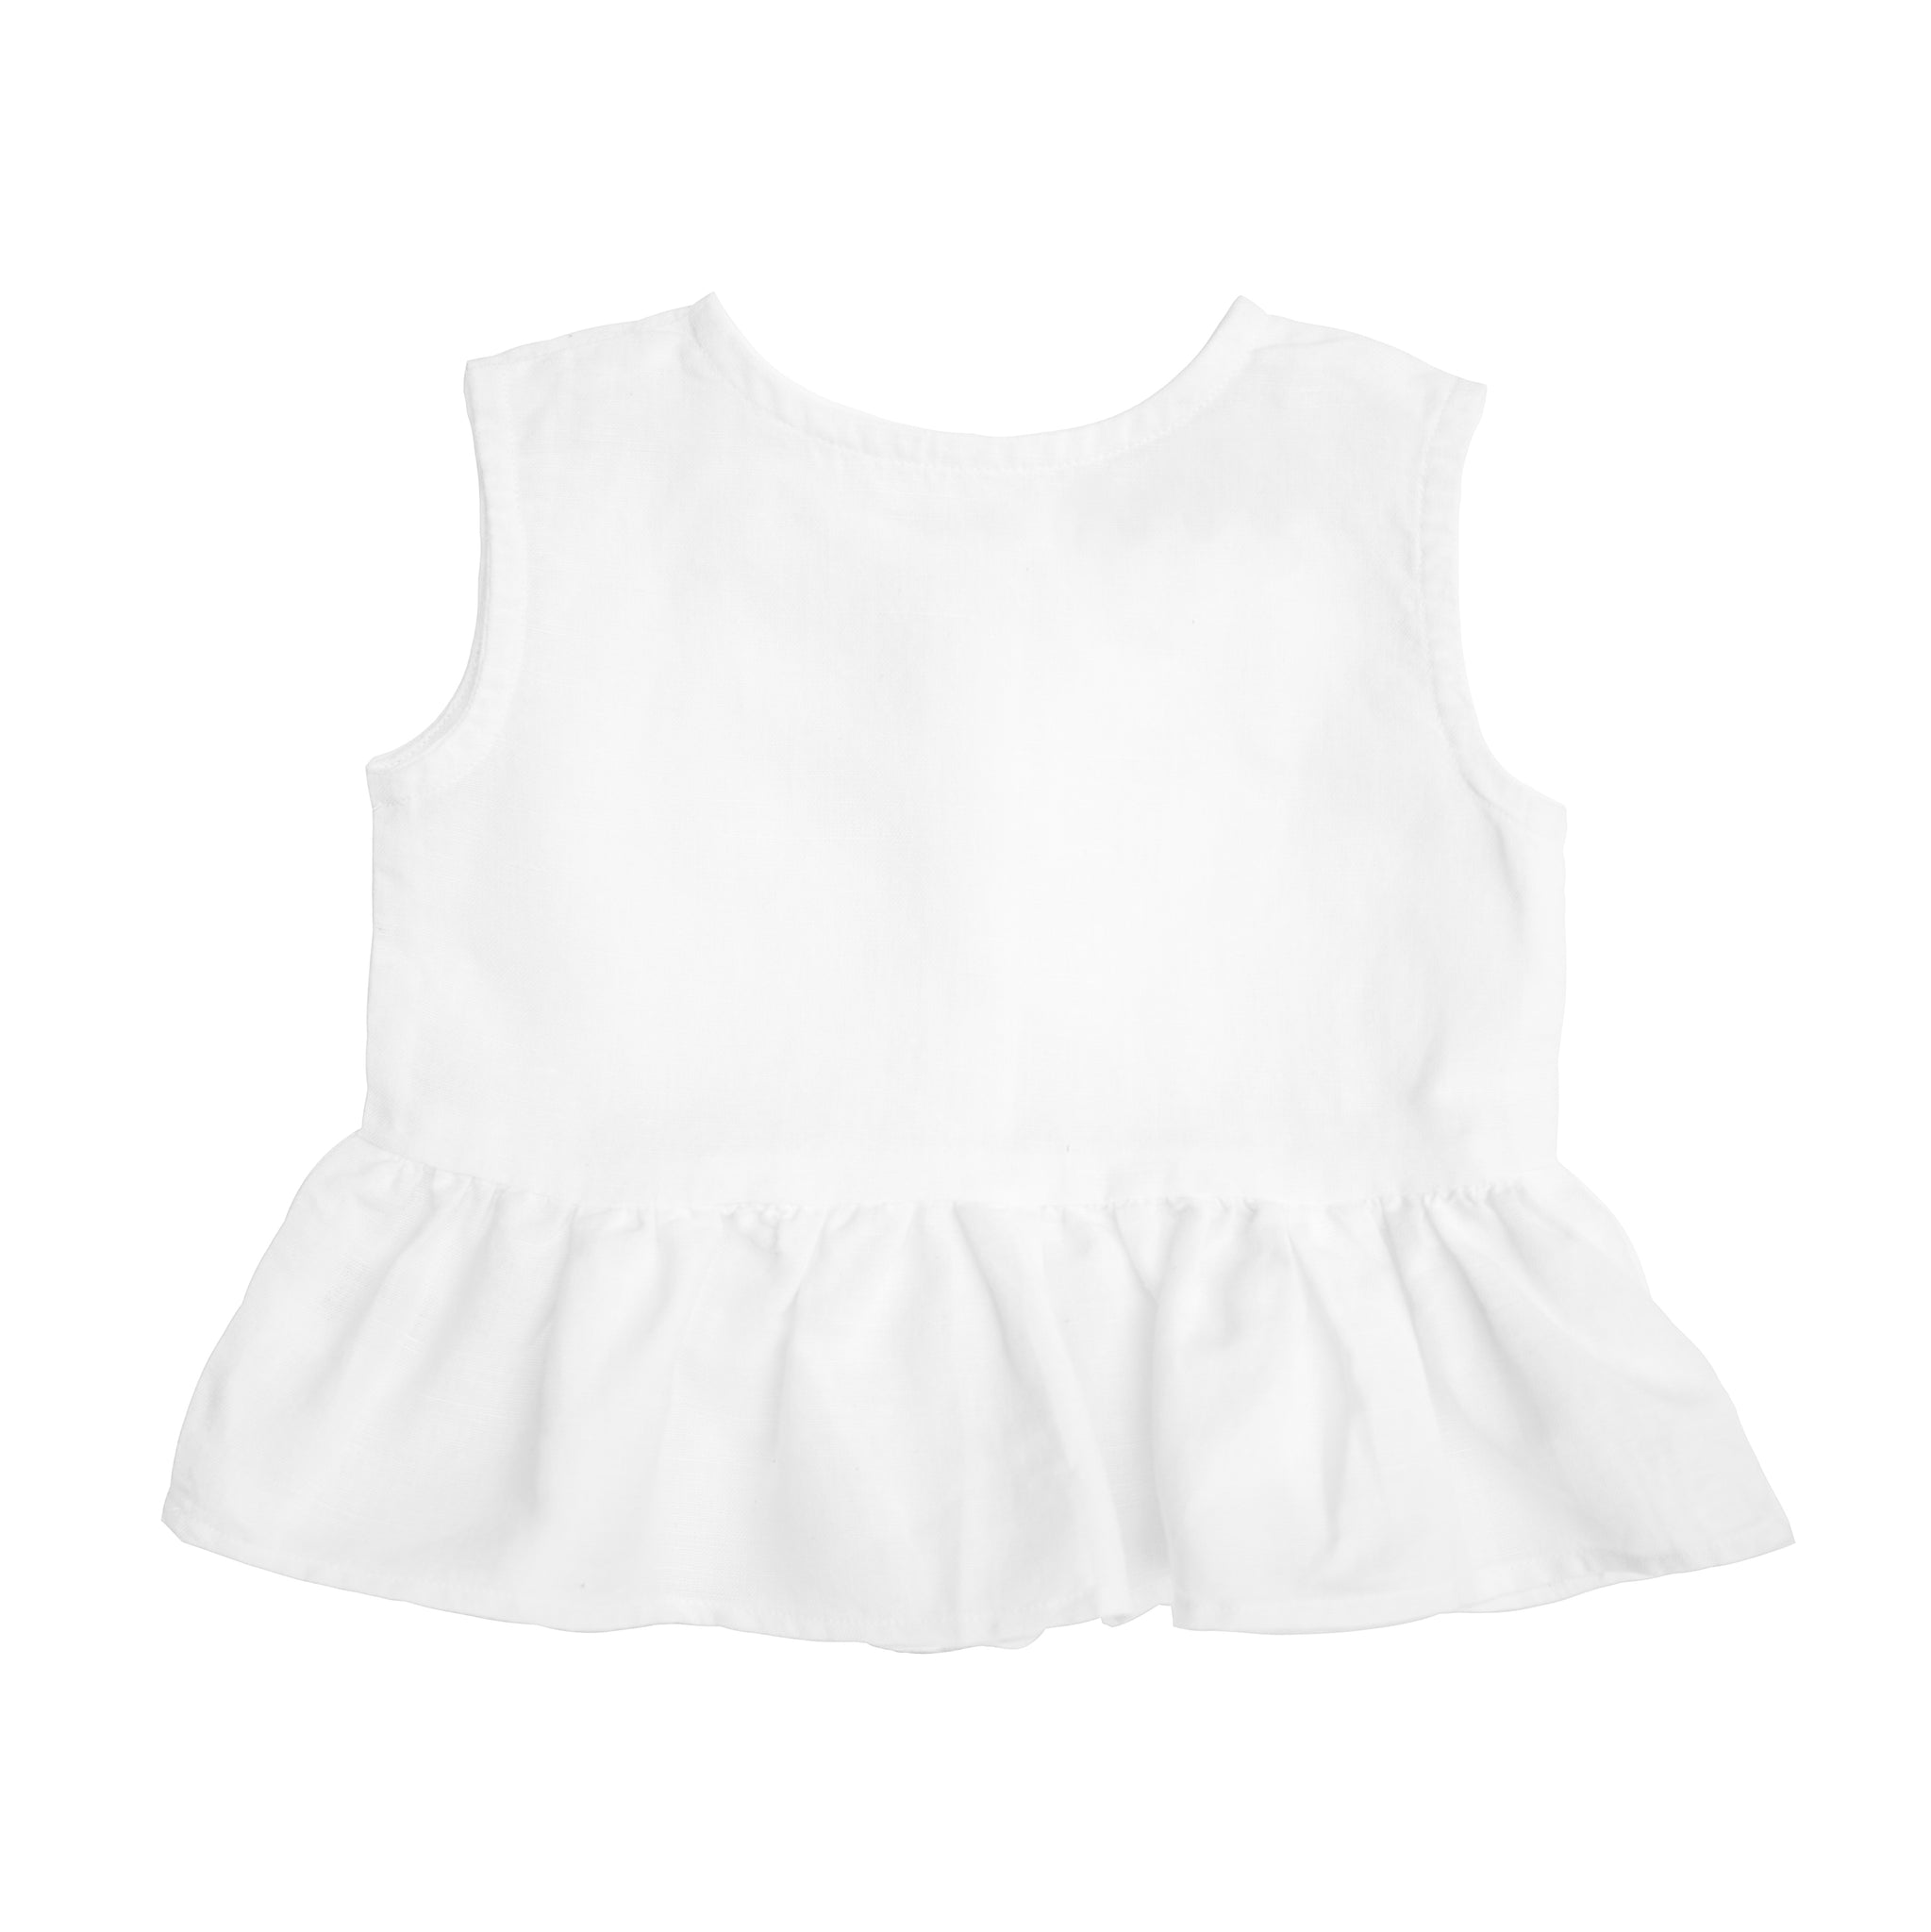 Sleeveless frill blouse | White linen